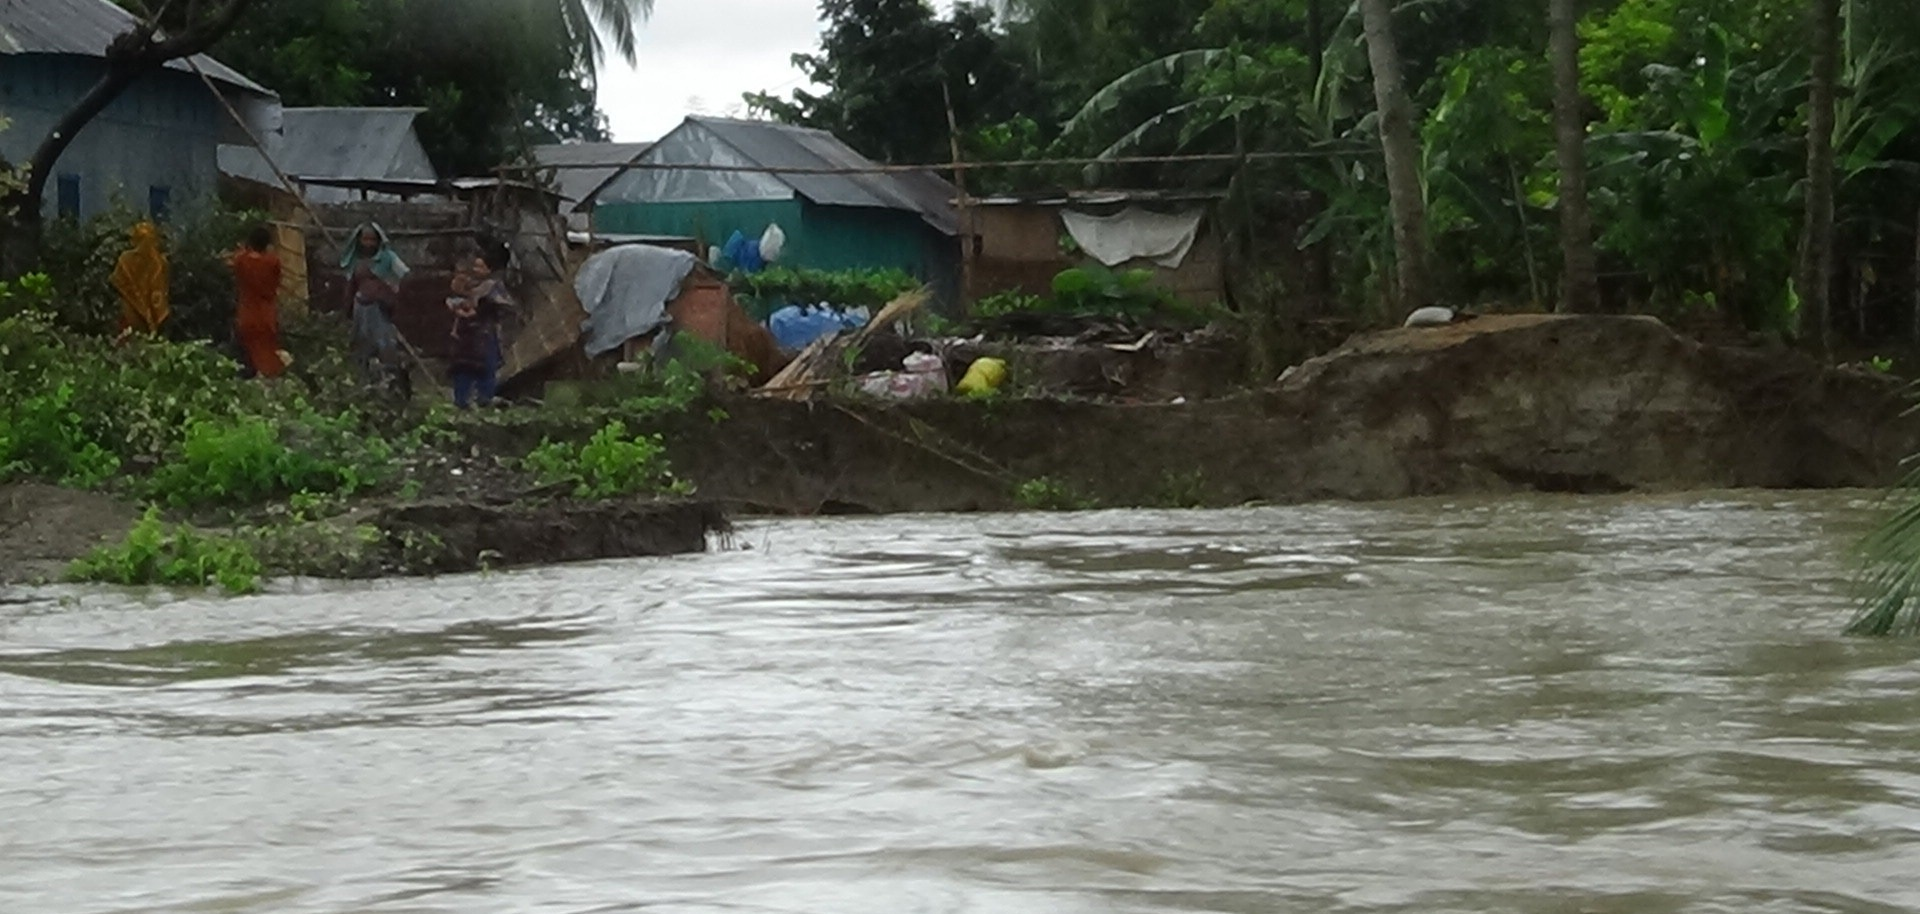 Govt takes necessary steps to protect river erosion in Faridpur: DC